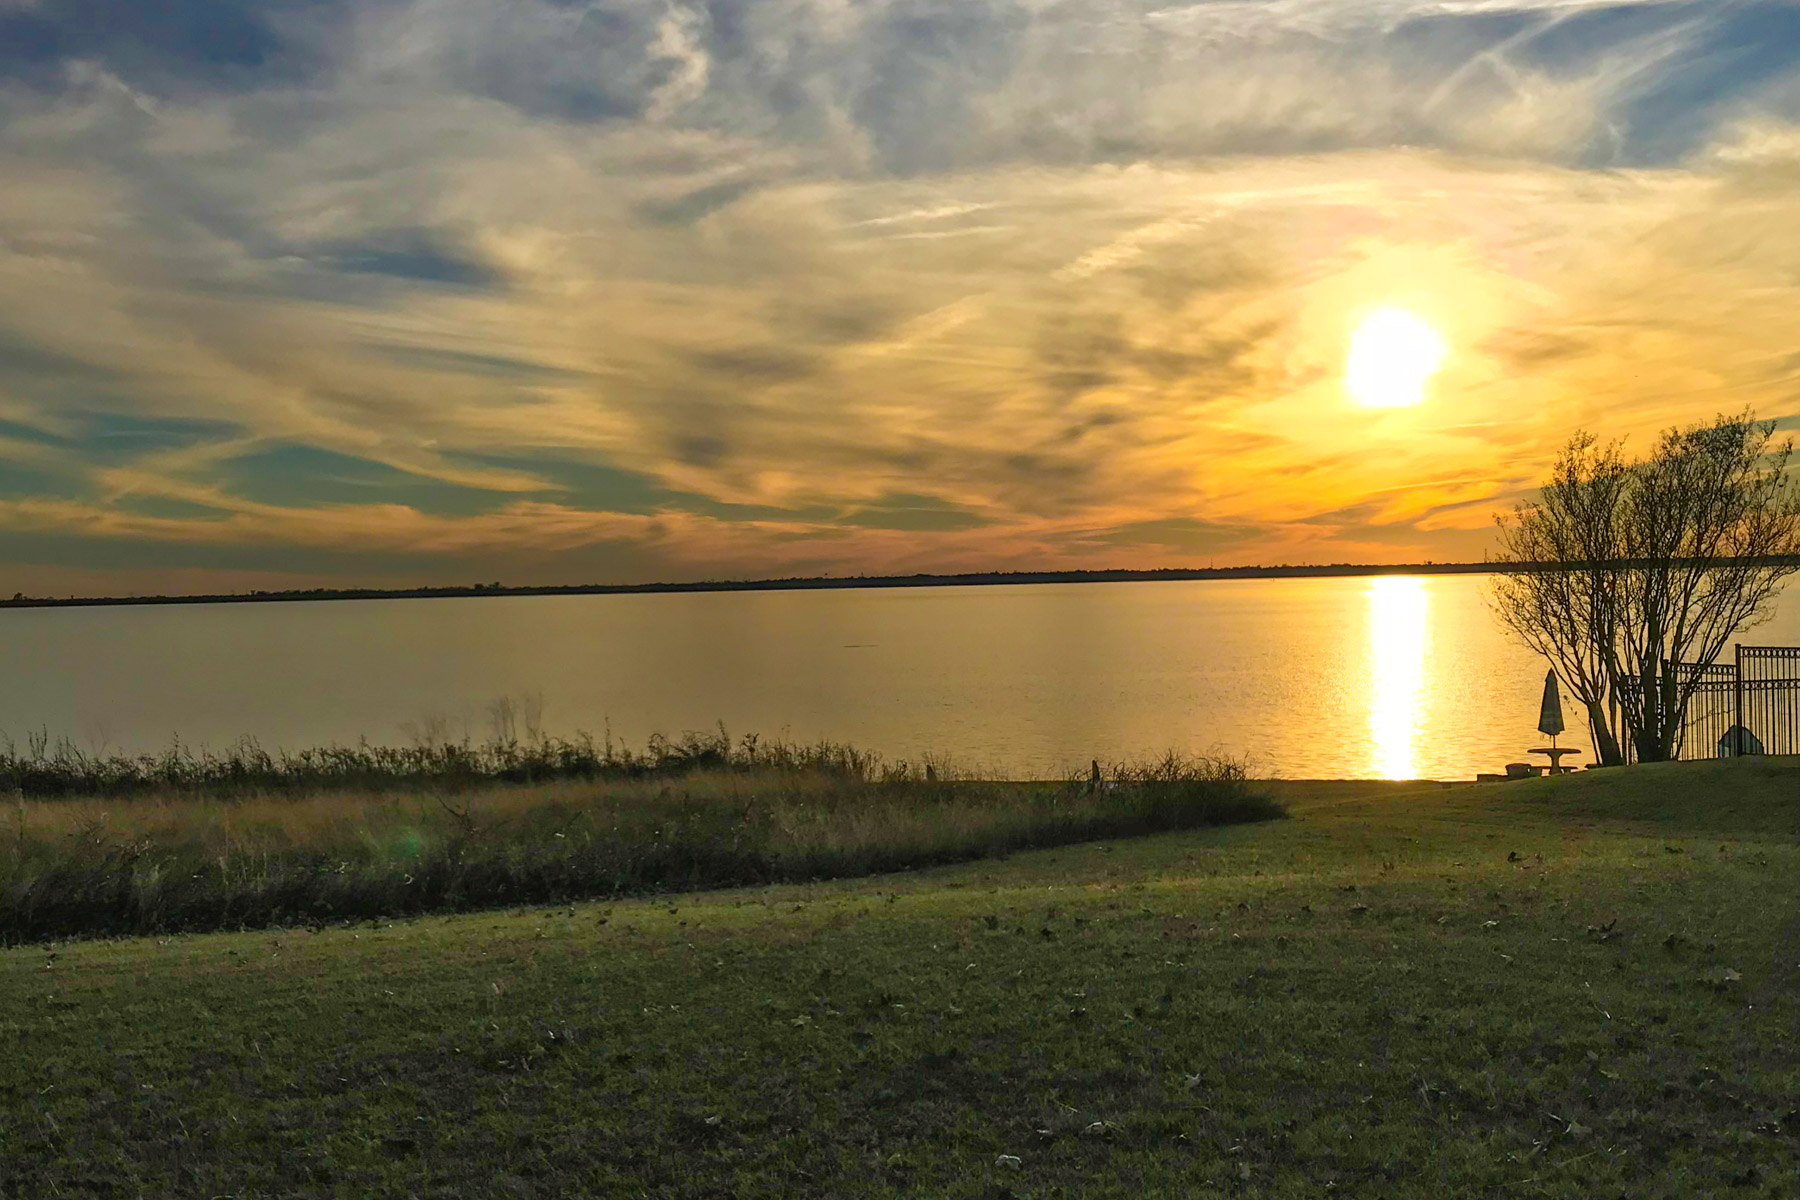 Land for Sale at Lakeview Lot in Heath 121 Scenic Drive, Heath, Texas, 75032 United States